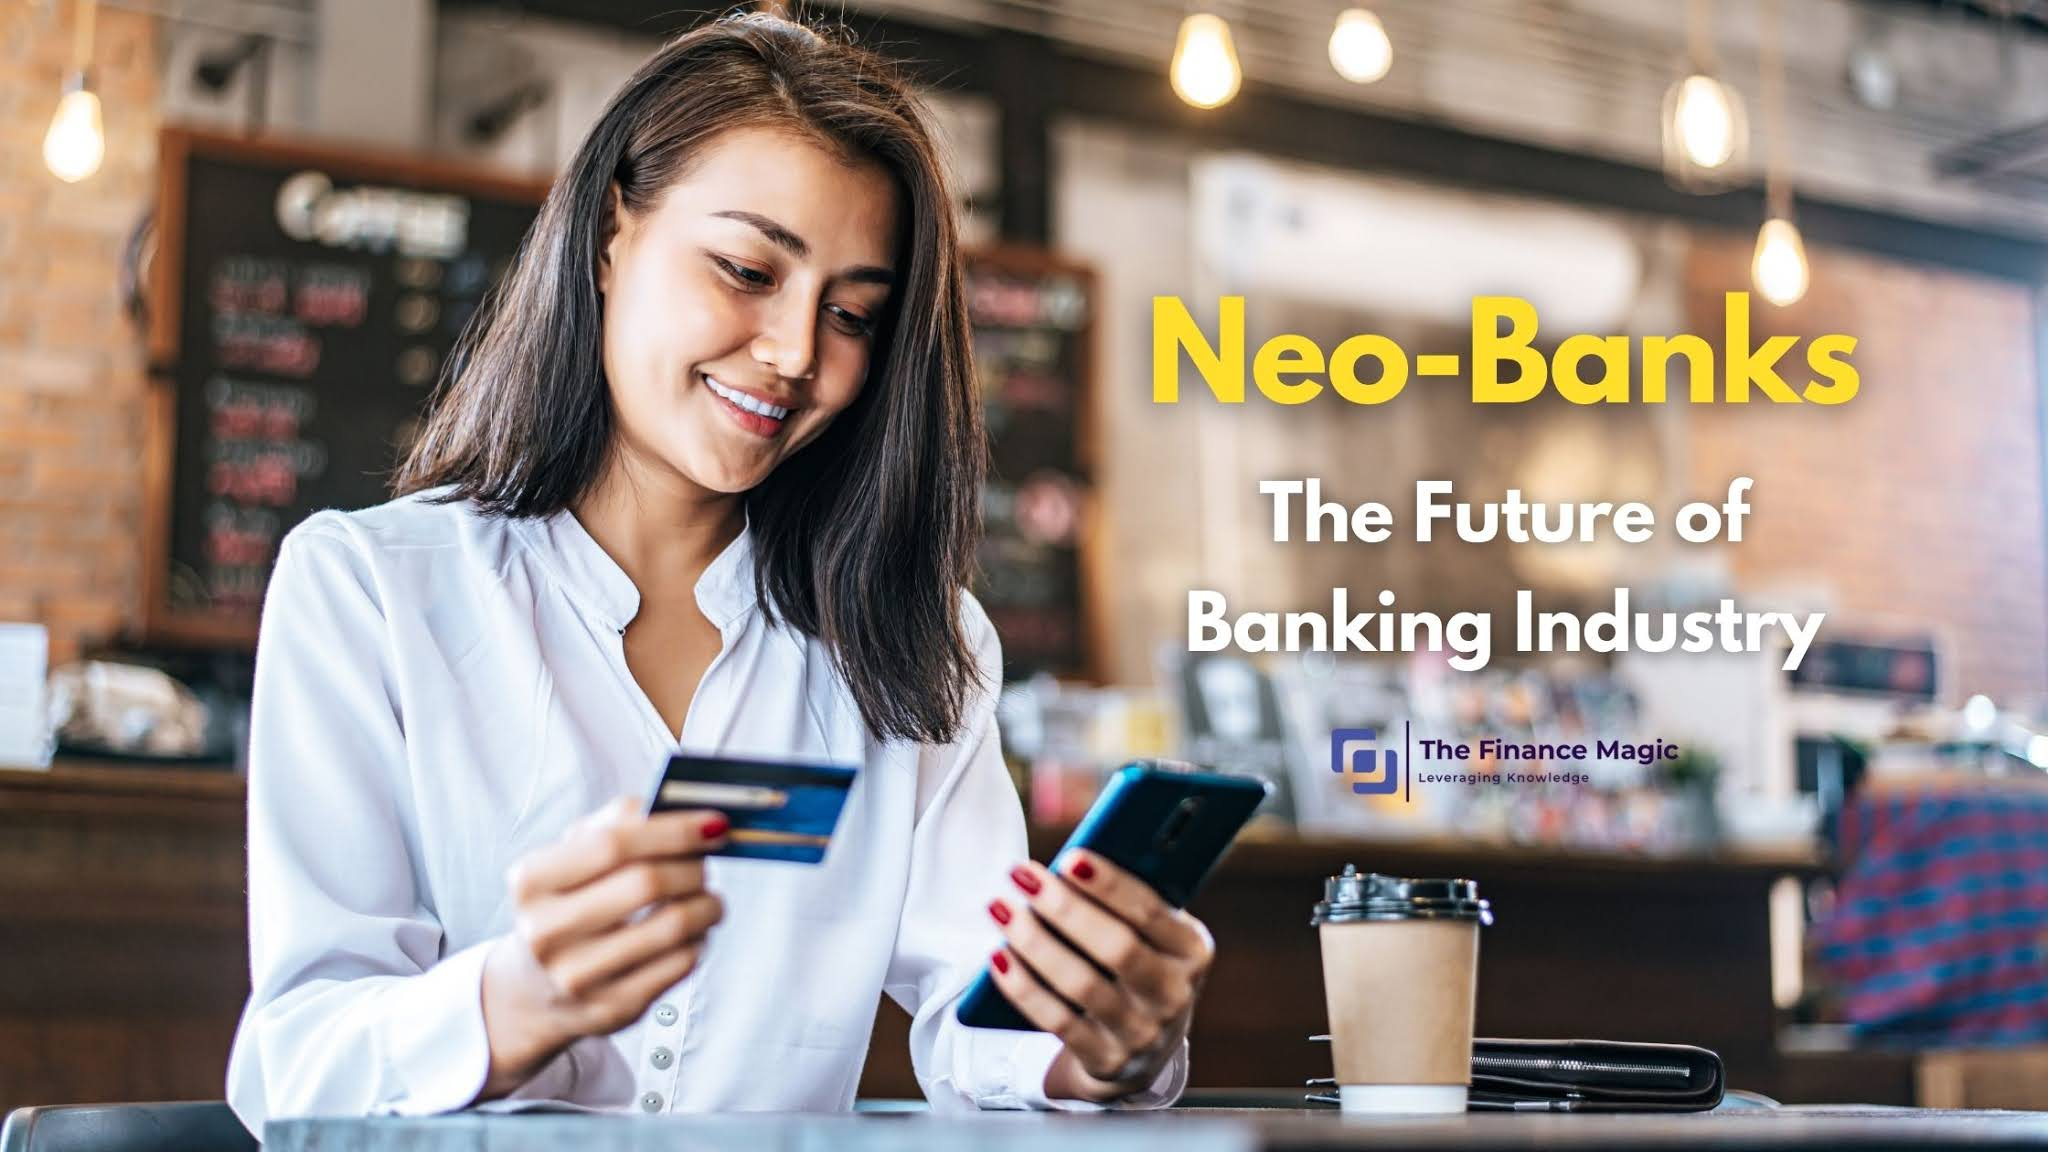 Neobanks : The future of banking industry